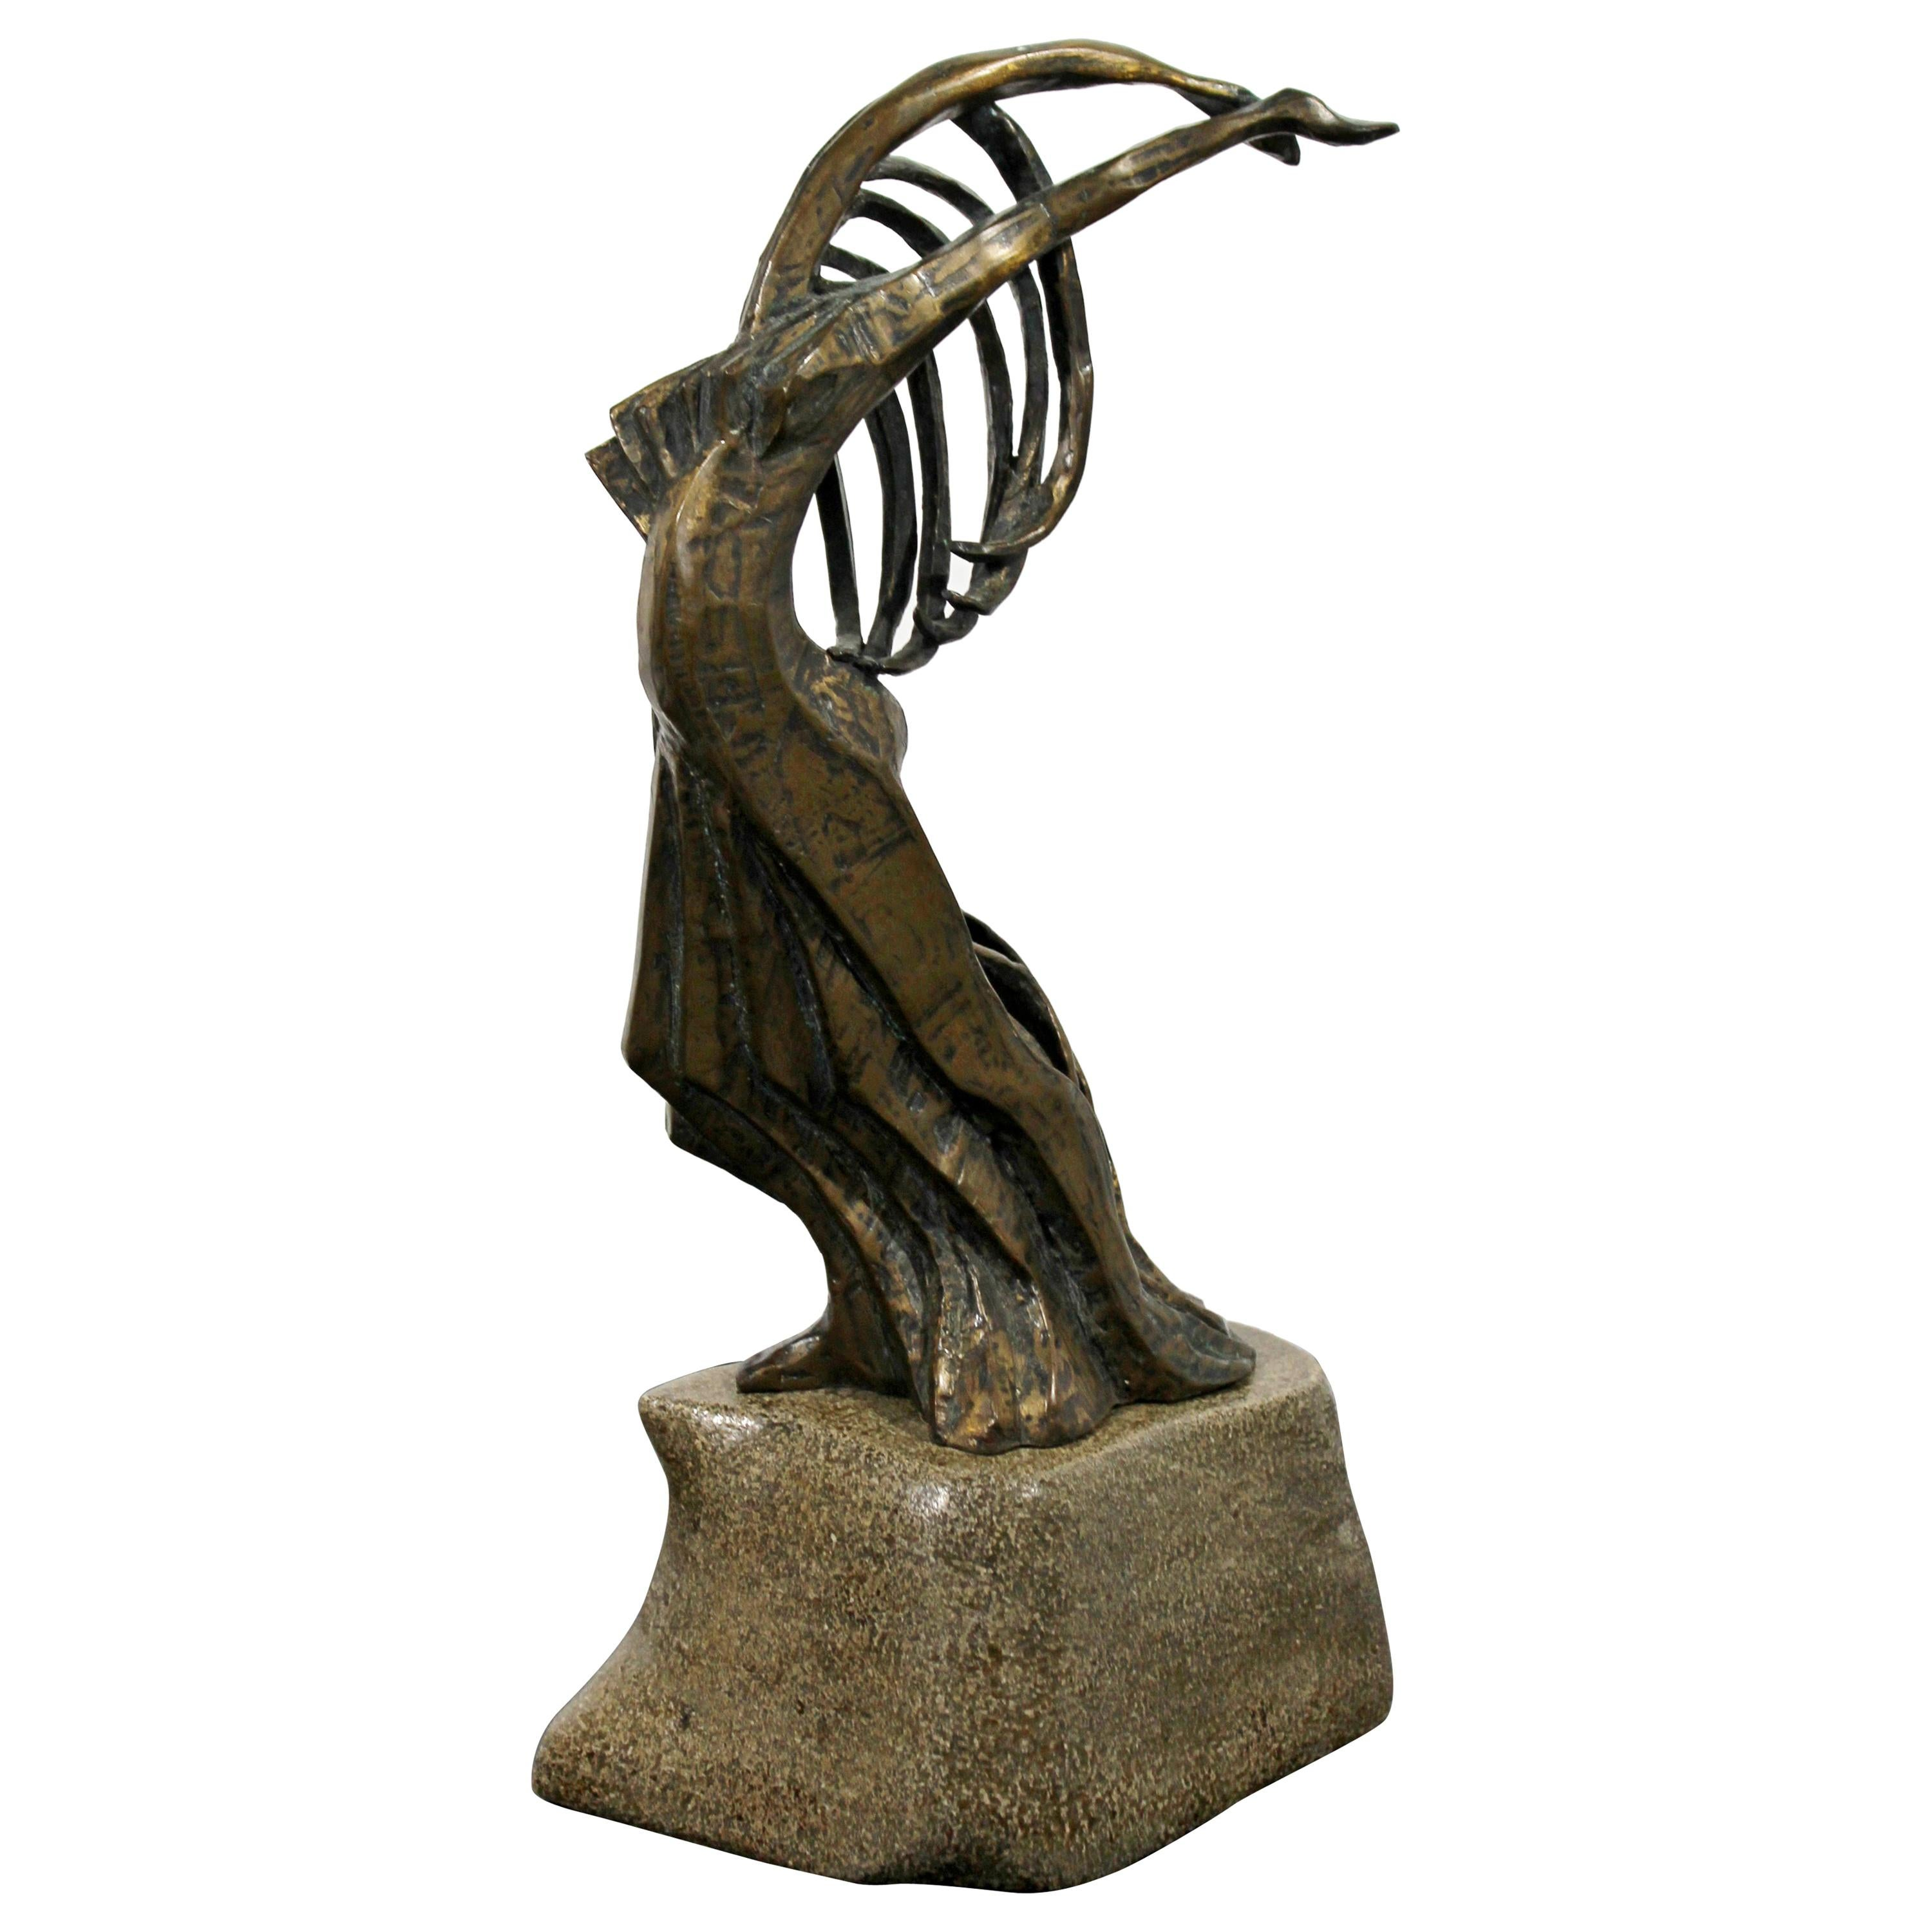 Contemporary Modern Bronze on Stone Female Figure Table Sculpture Signed 1999